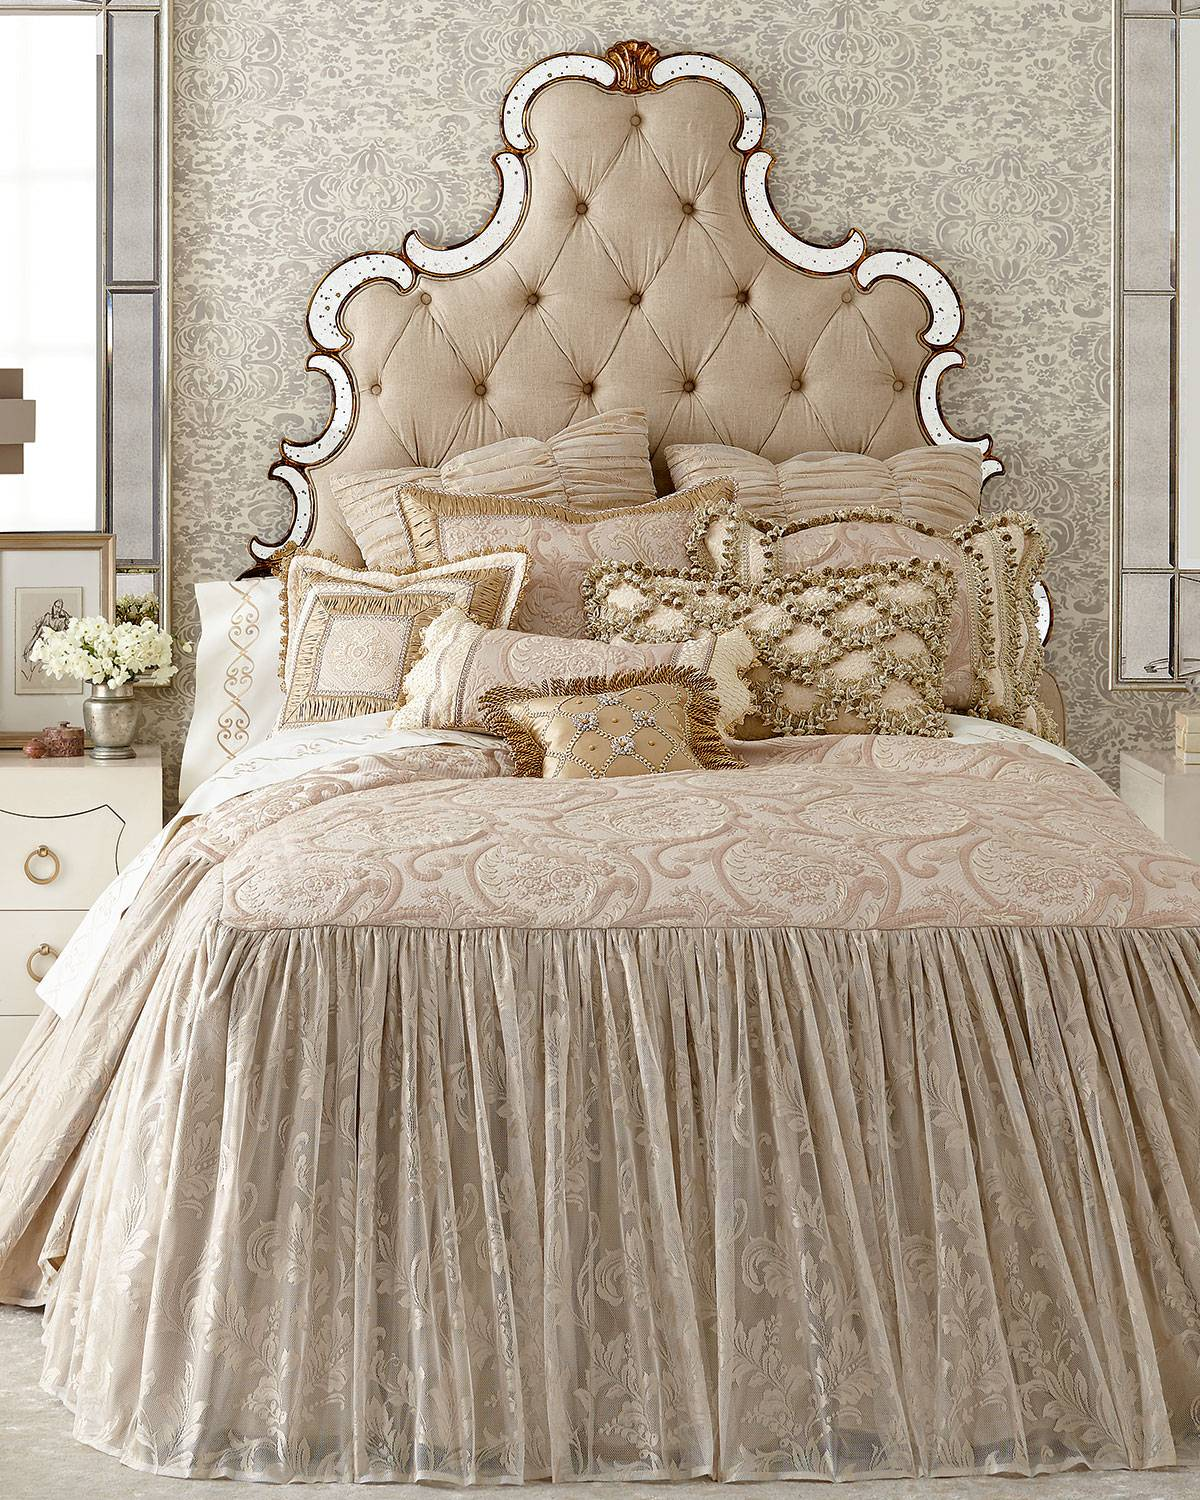 Sweet Dreams Queen Kensington Garden Coverlet